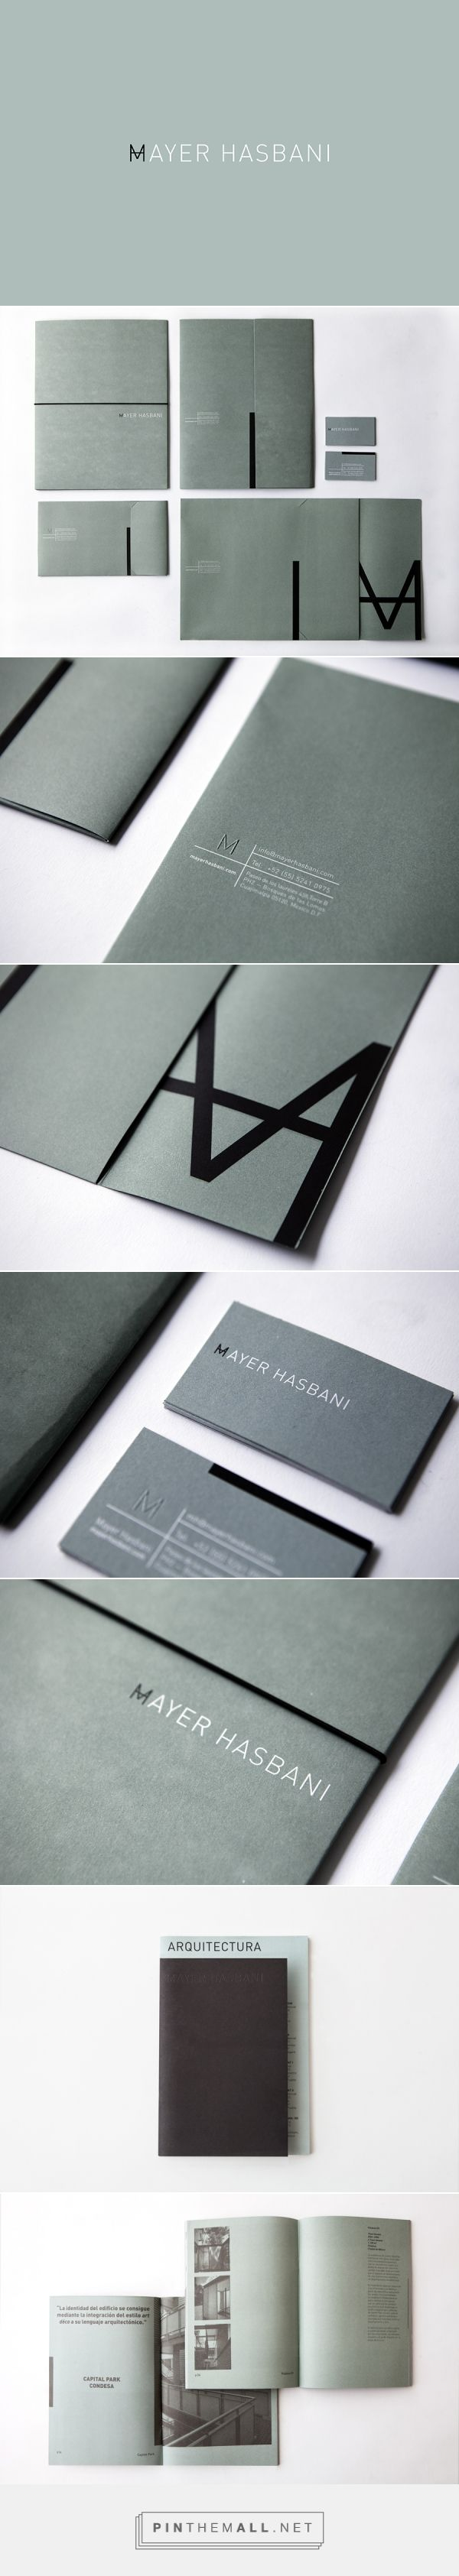 Mayer Hasbani Branding by Sociedad Anonima | Fivestar Branding – Design and Branding Agency & Inspiration Gallery